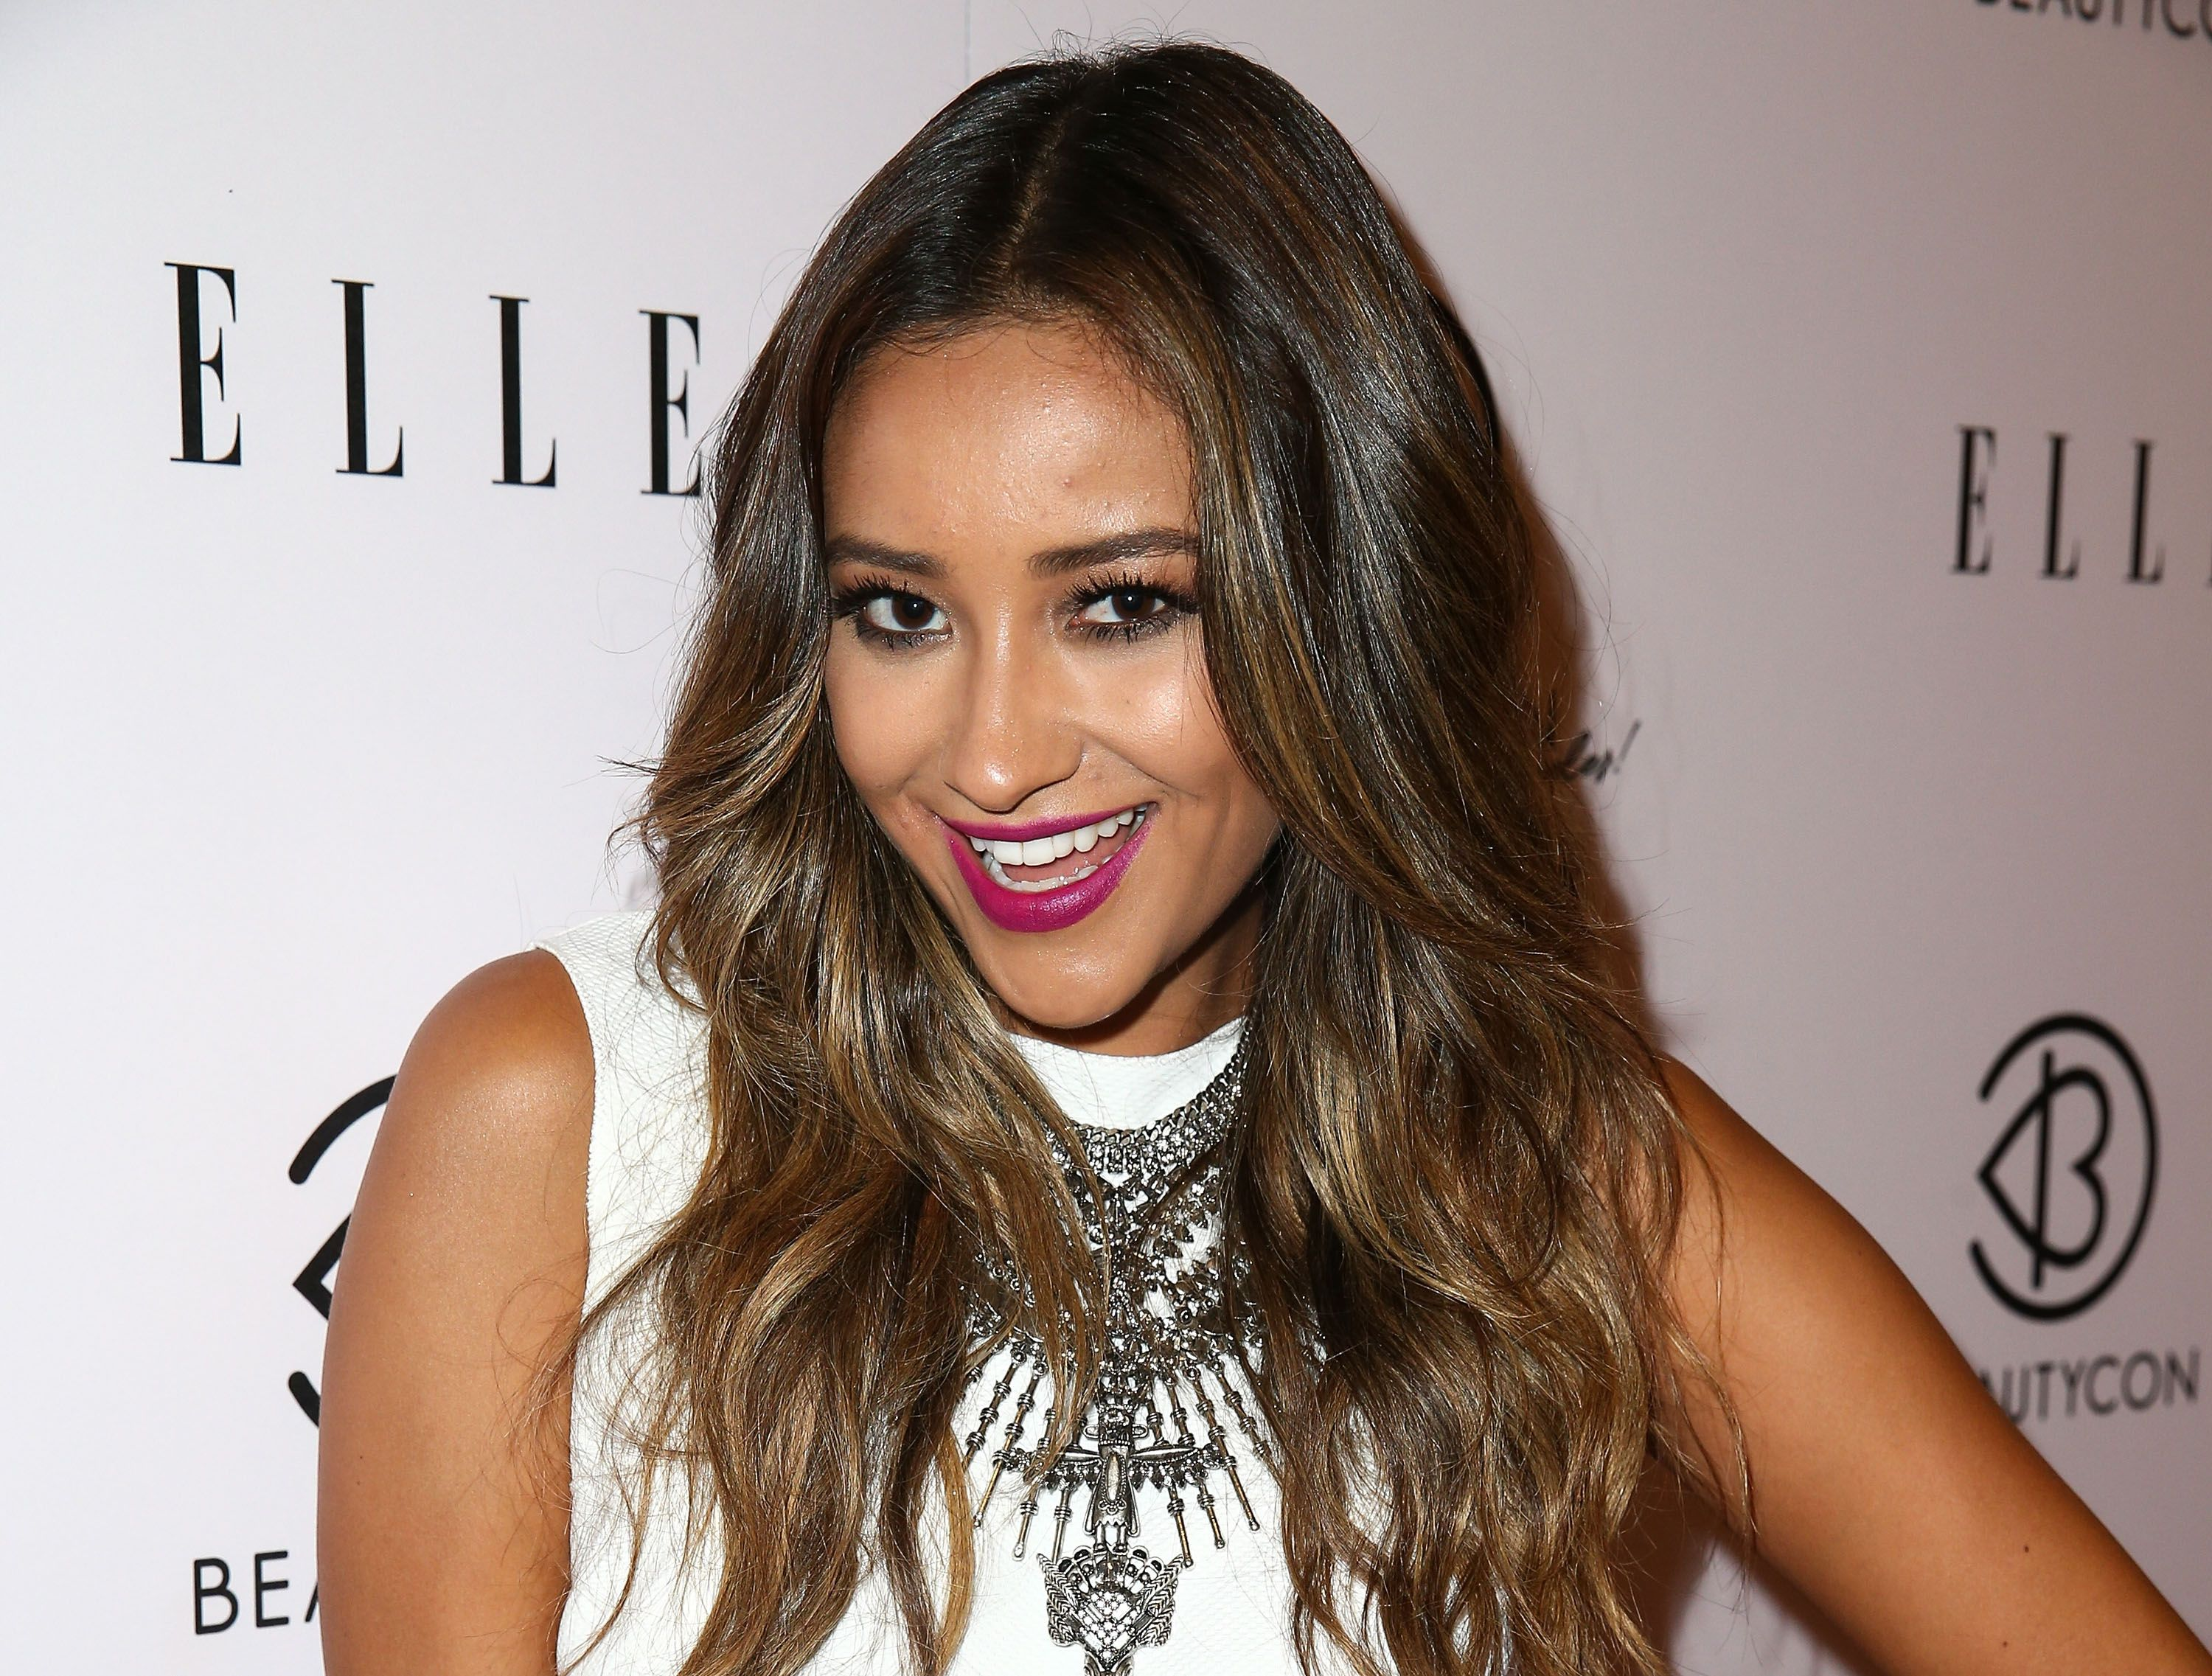 Discussion on this topic: The 14 Best Shay Mitchell Beauty Moments , the-14-best-shay-mitchell-beauty-moments/